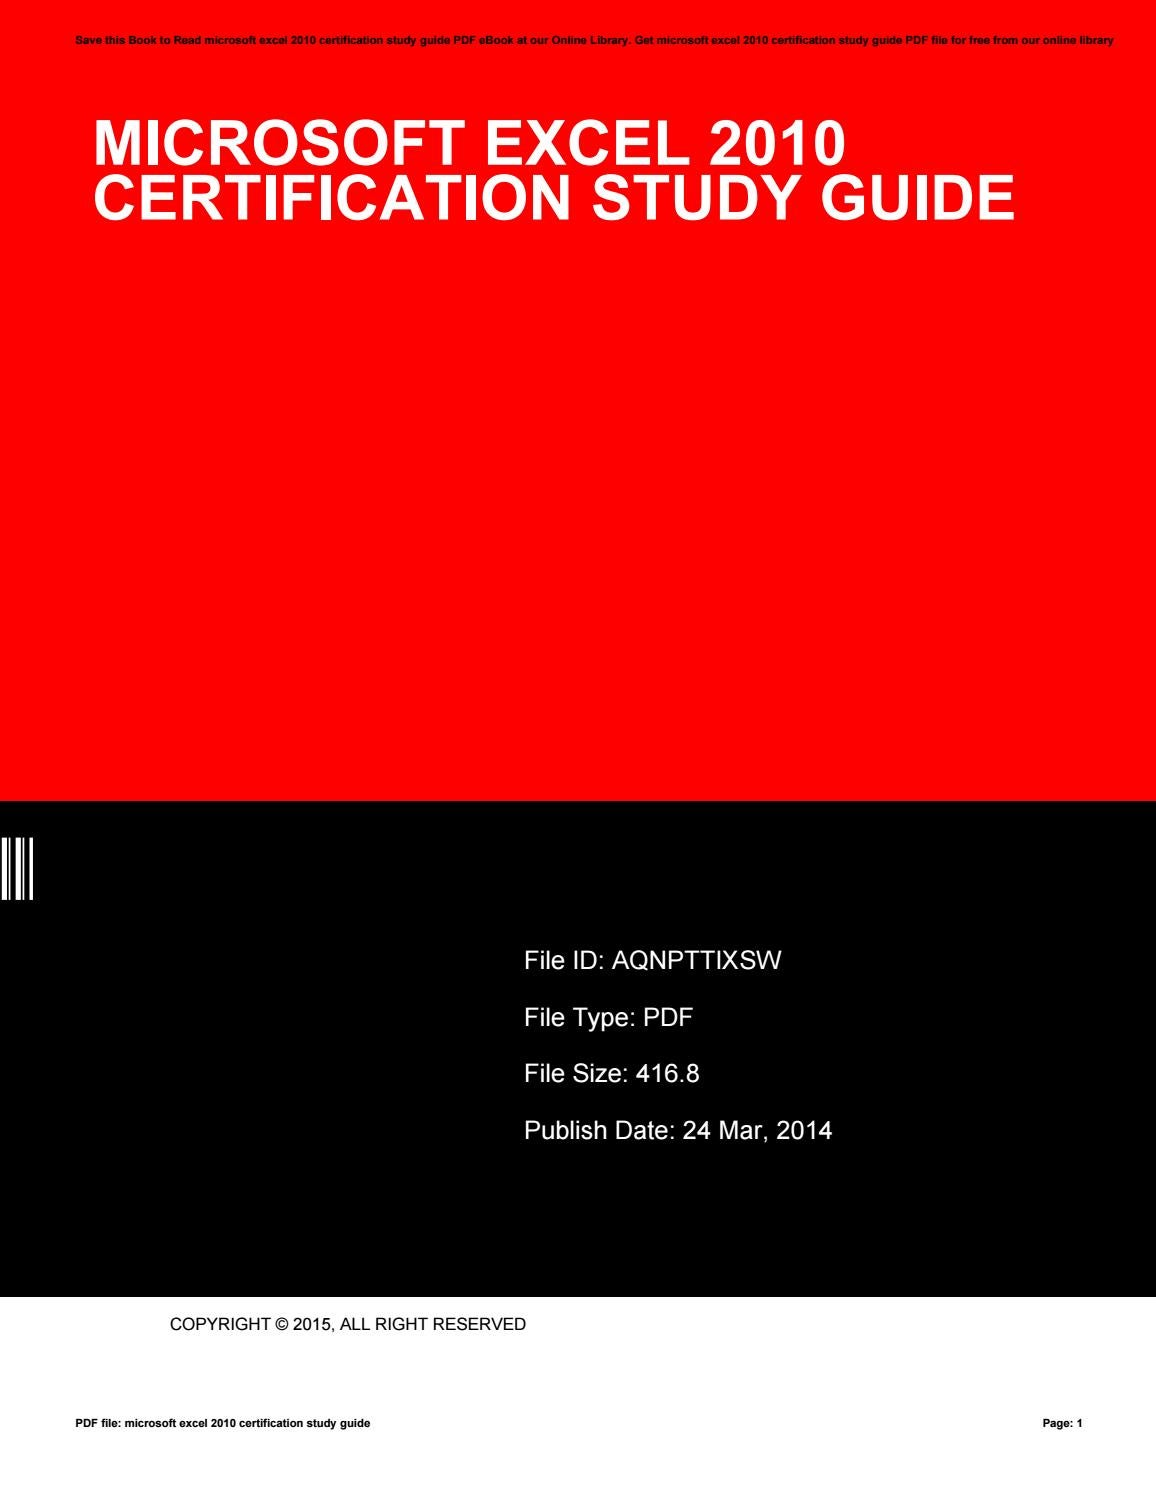 Microsoft Excel 2010 Certification Study Guide By Angelinewhite3323